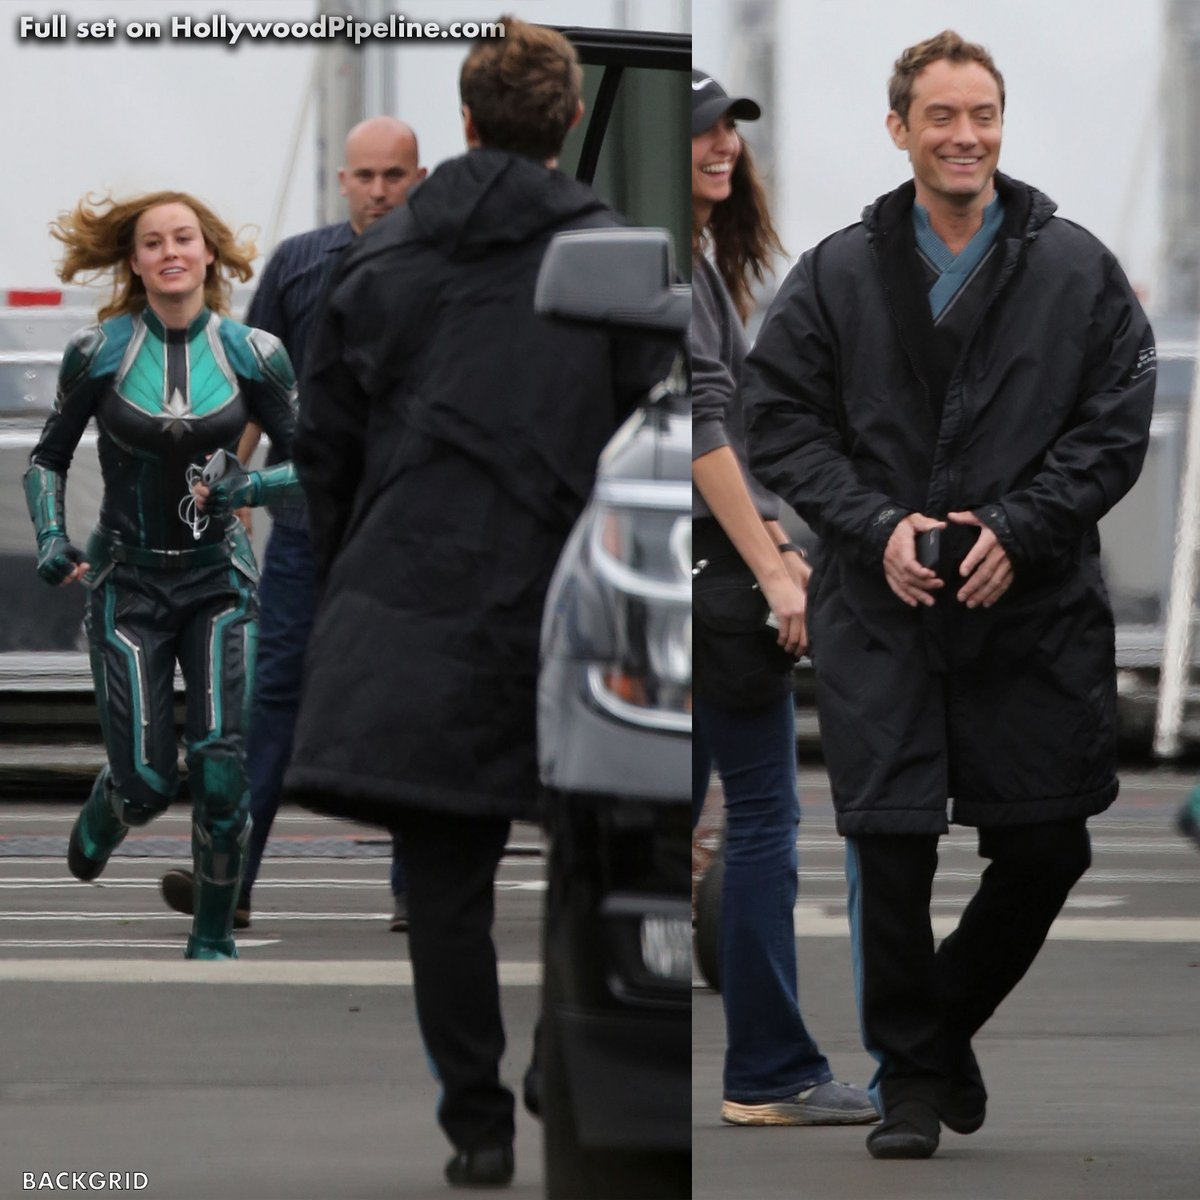 "<em><strong>Brie Larson (Captain Marvel) et Jude Law (Mar-vell) sur le plateau de tournage de ""CAPTAIN MARVEL""</strong>. ©Hollywood Pipeline</em>"